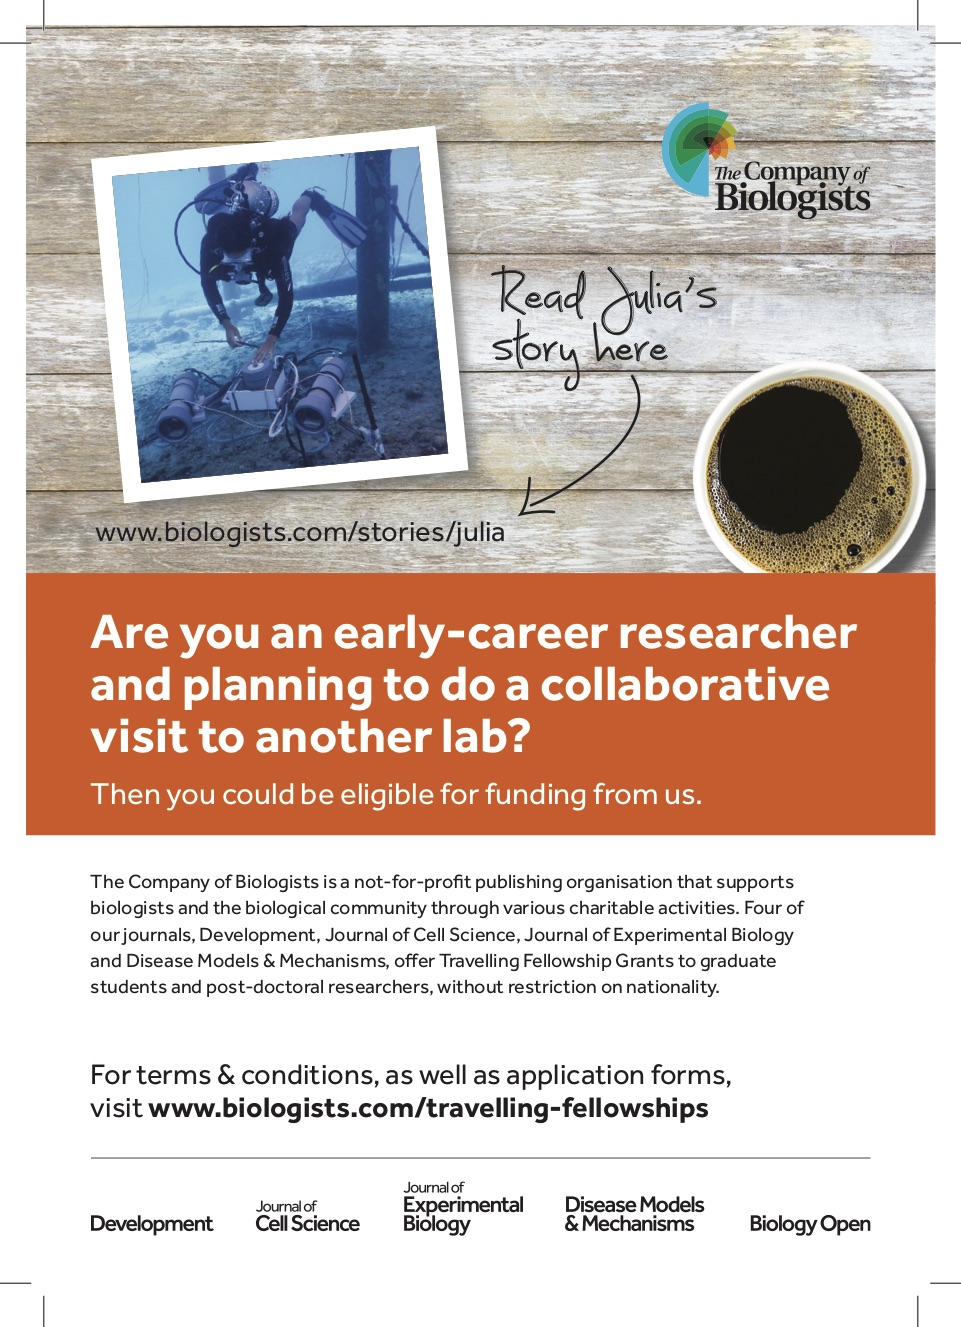 Starring in the Company of Biologists' ad!